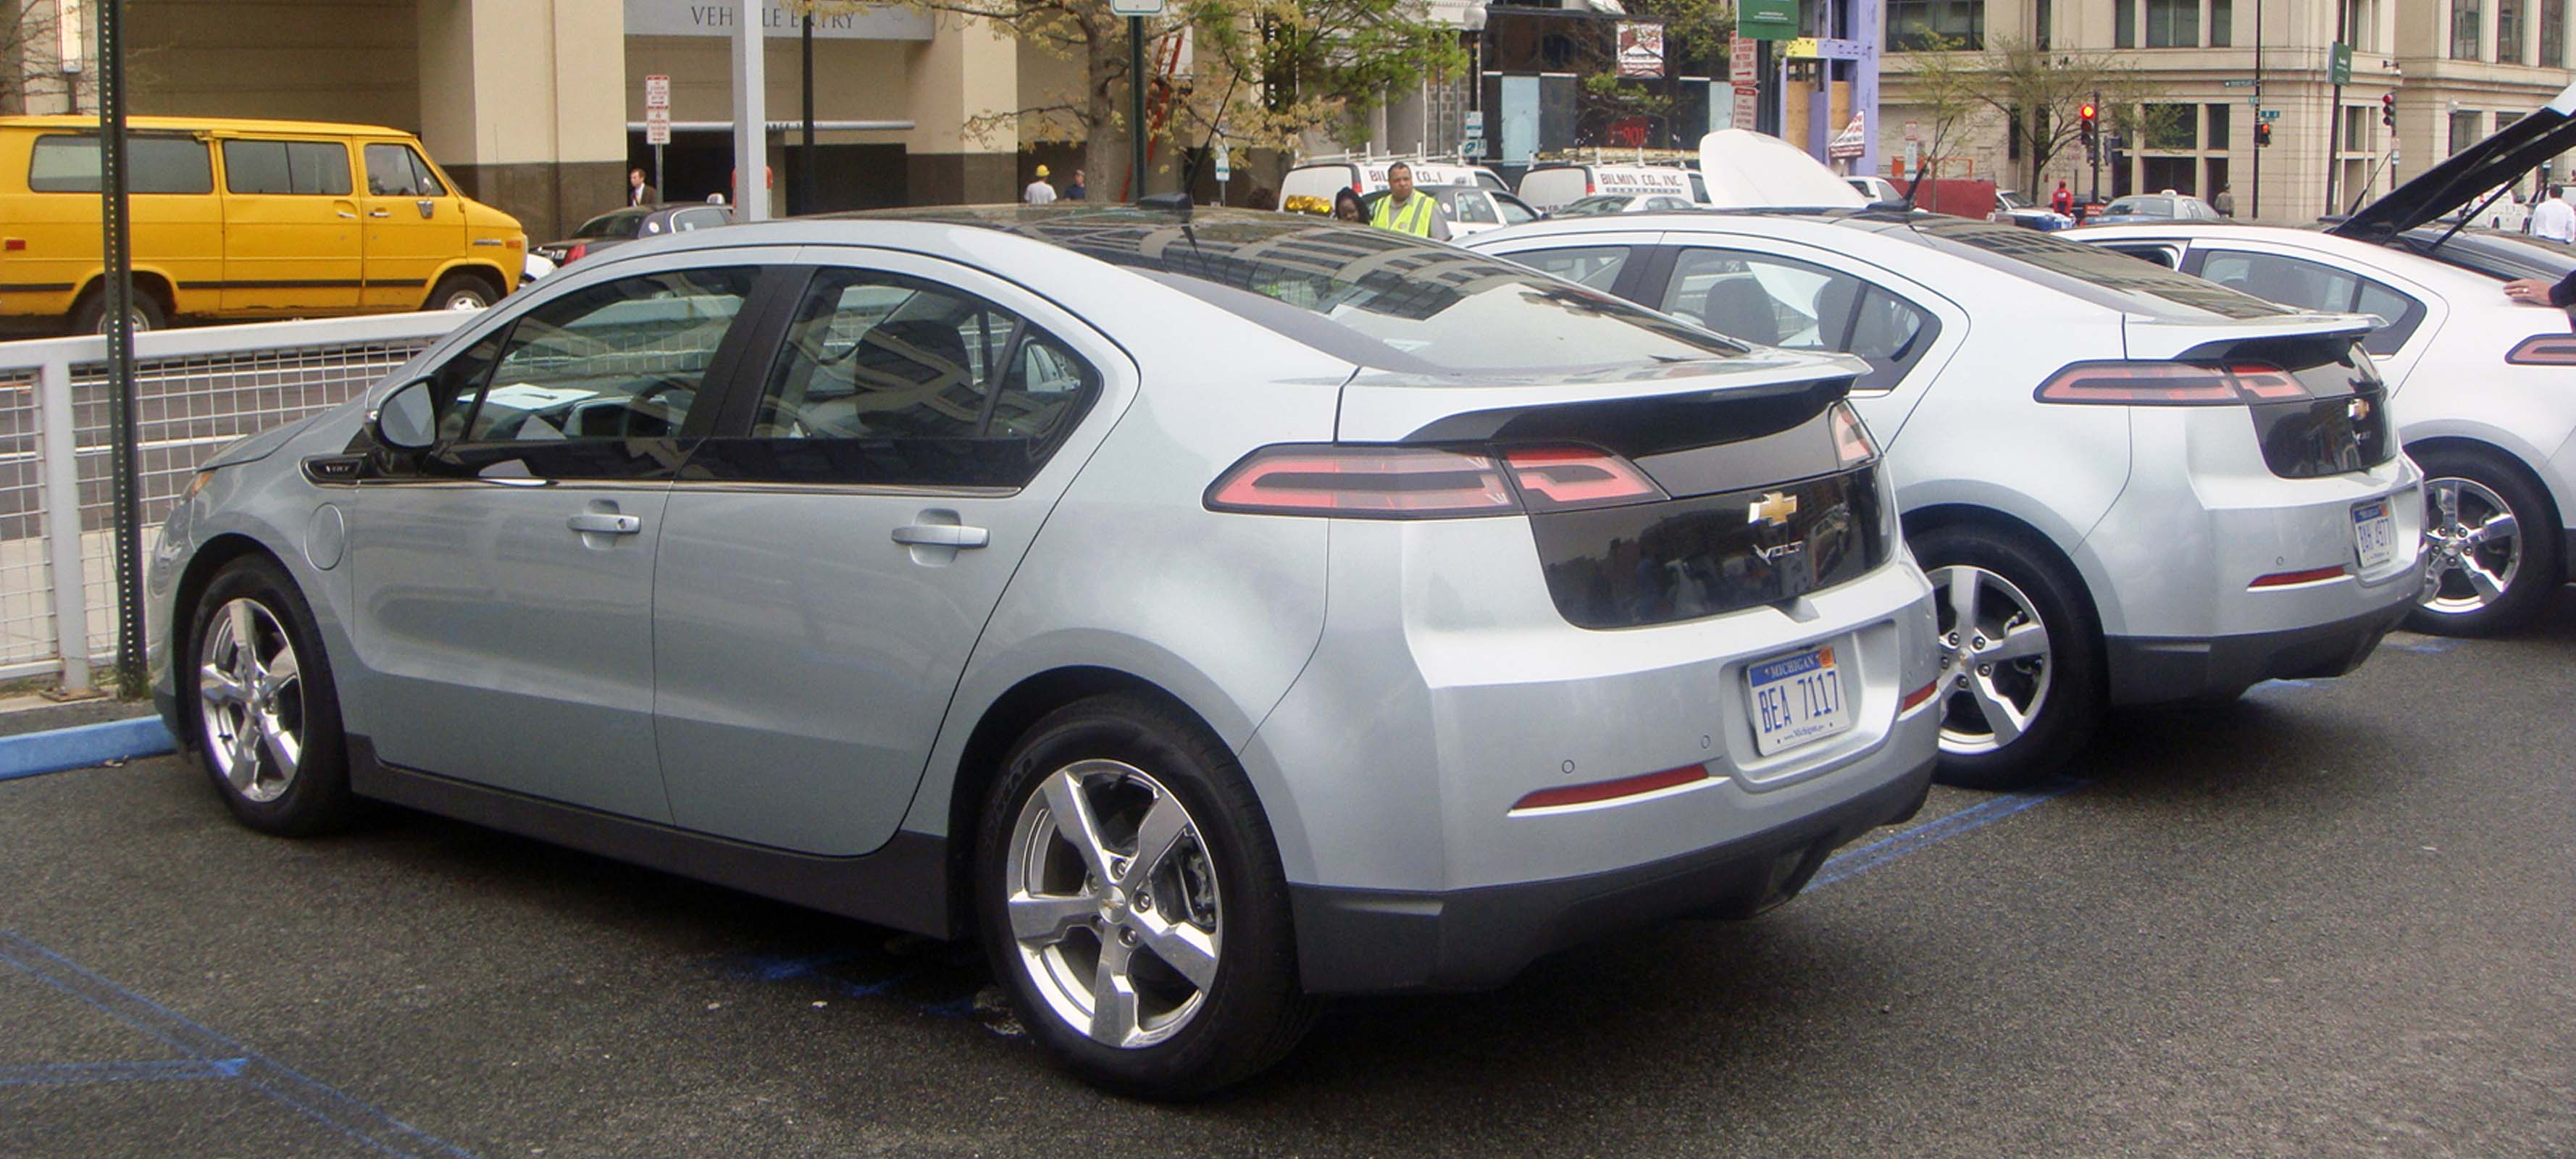 Chevy Volts parked in a row